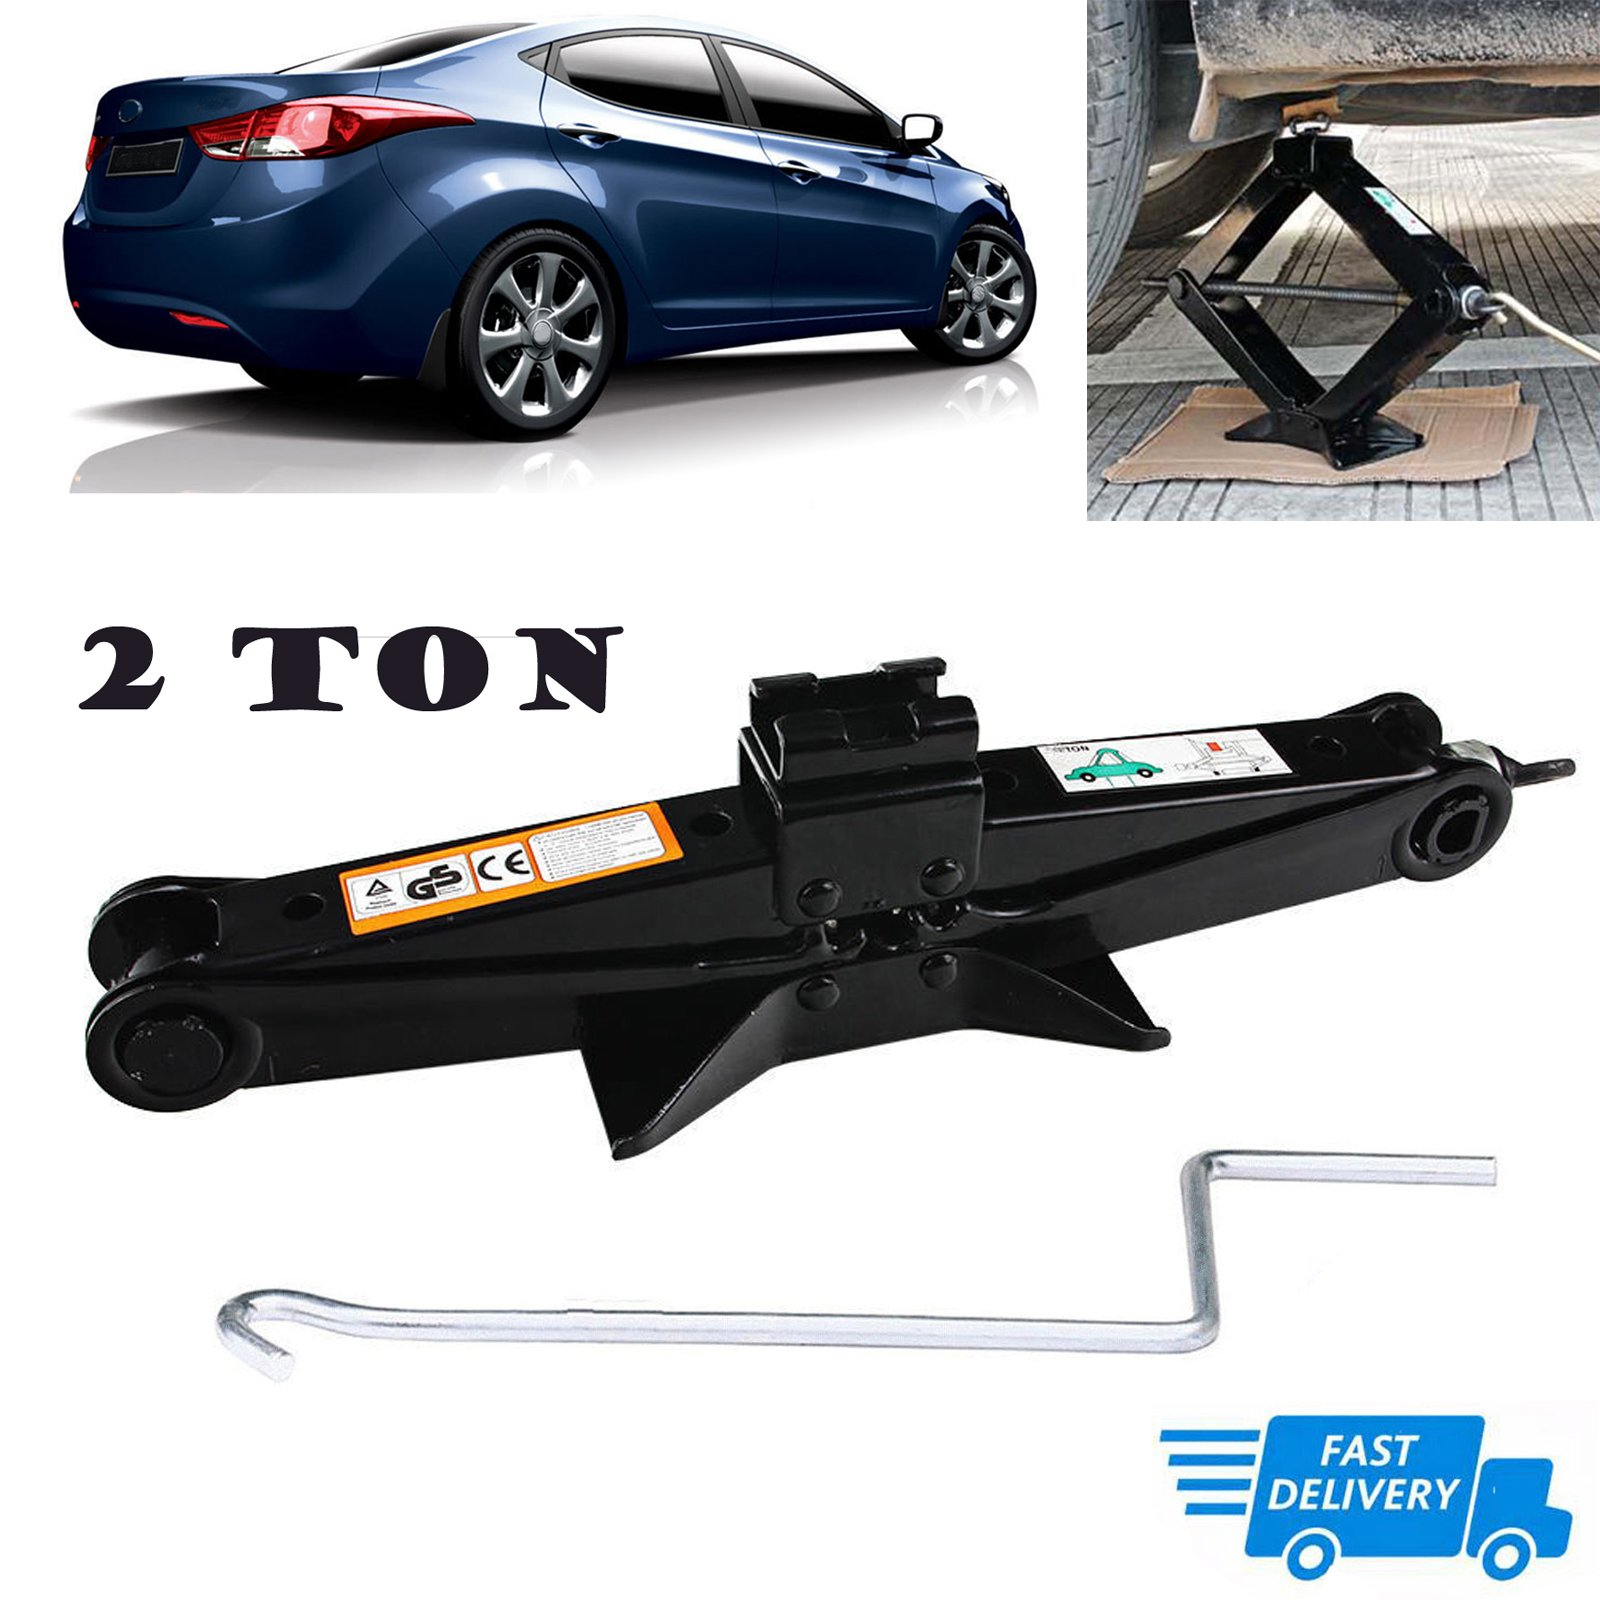 Scissor Jack 2 Ton with Crank Handle Rustproof Car Stabilizer Lift for Hyundai Sonata/Elentra/Genesis/Veloster US Stock